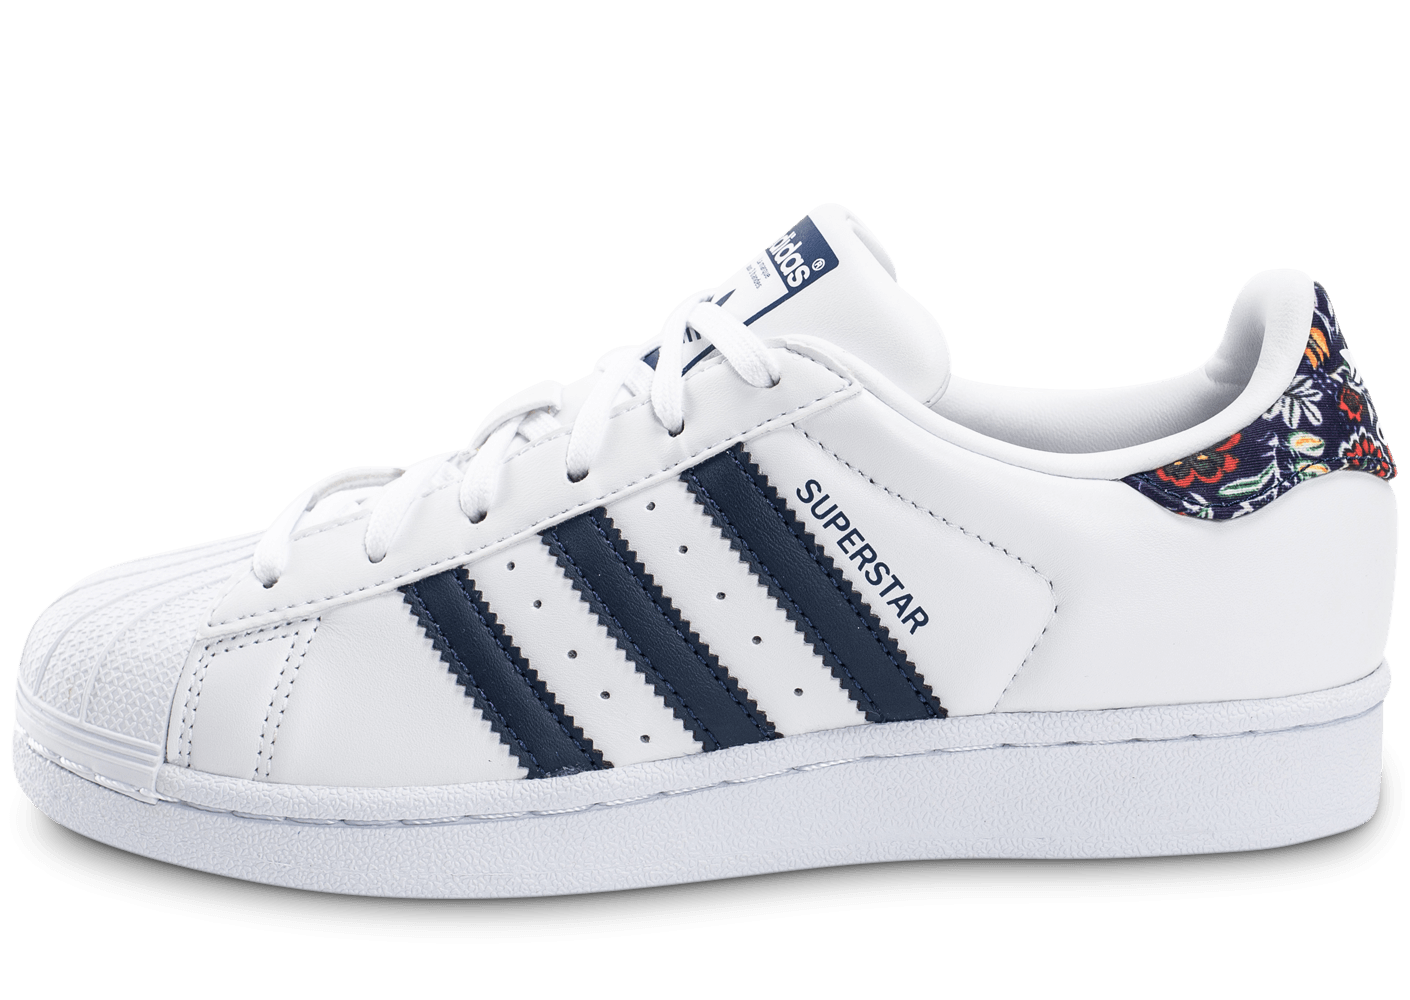 chaussures adidas superstar adidas superstar summer pack grise baskets tennis homme